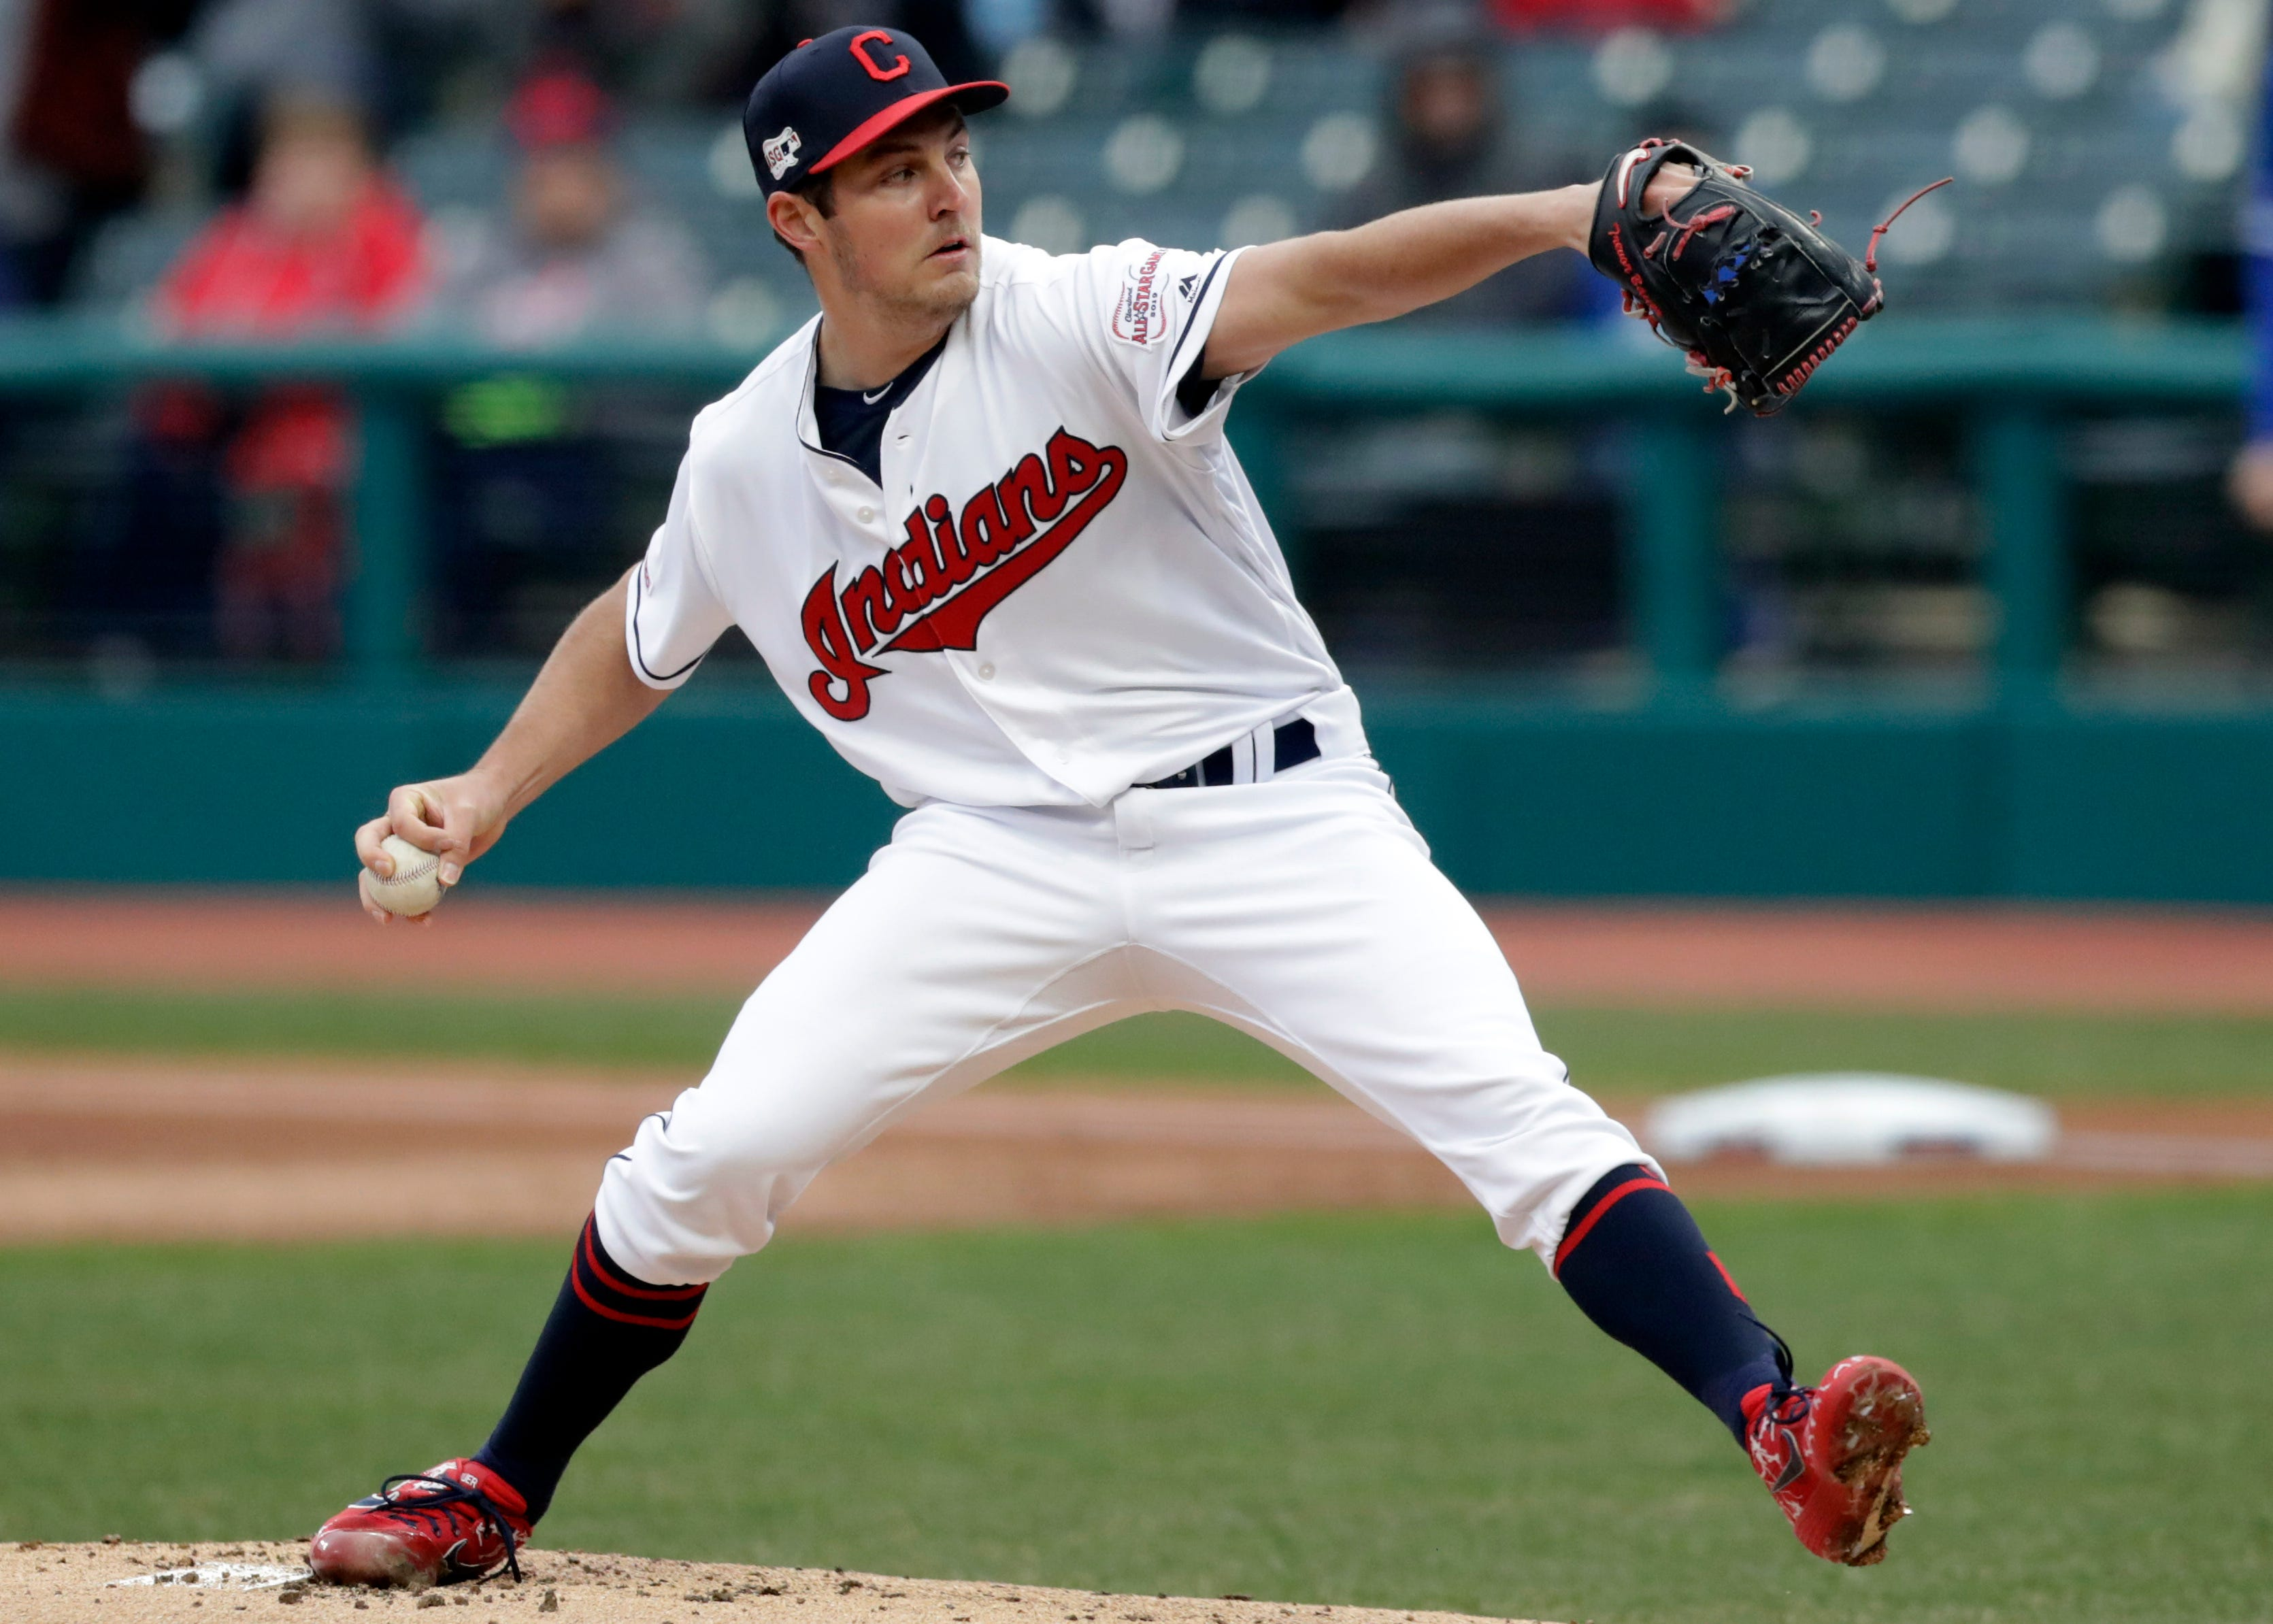 Indians' Bauer is pitching no-hitter through 7 vs Blue Jays